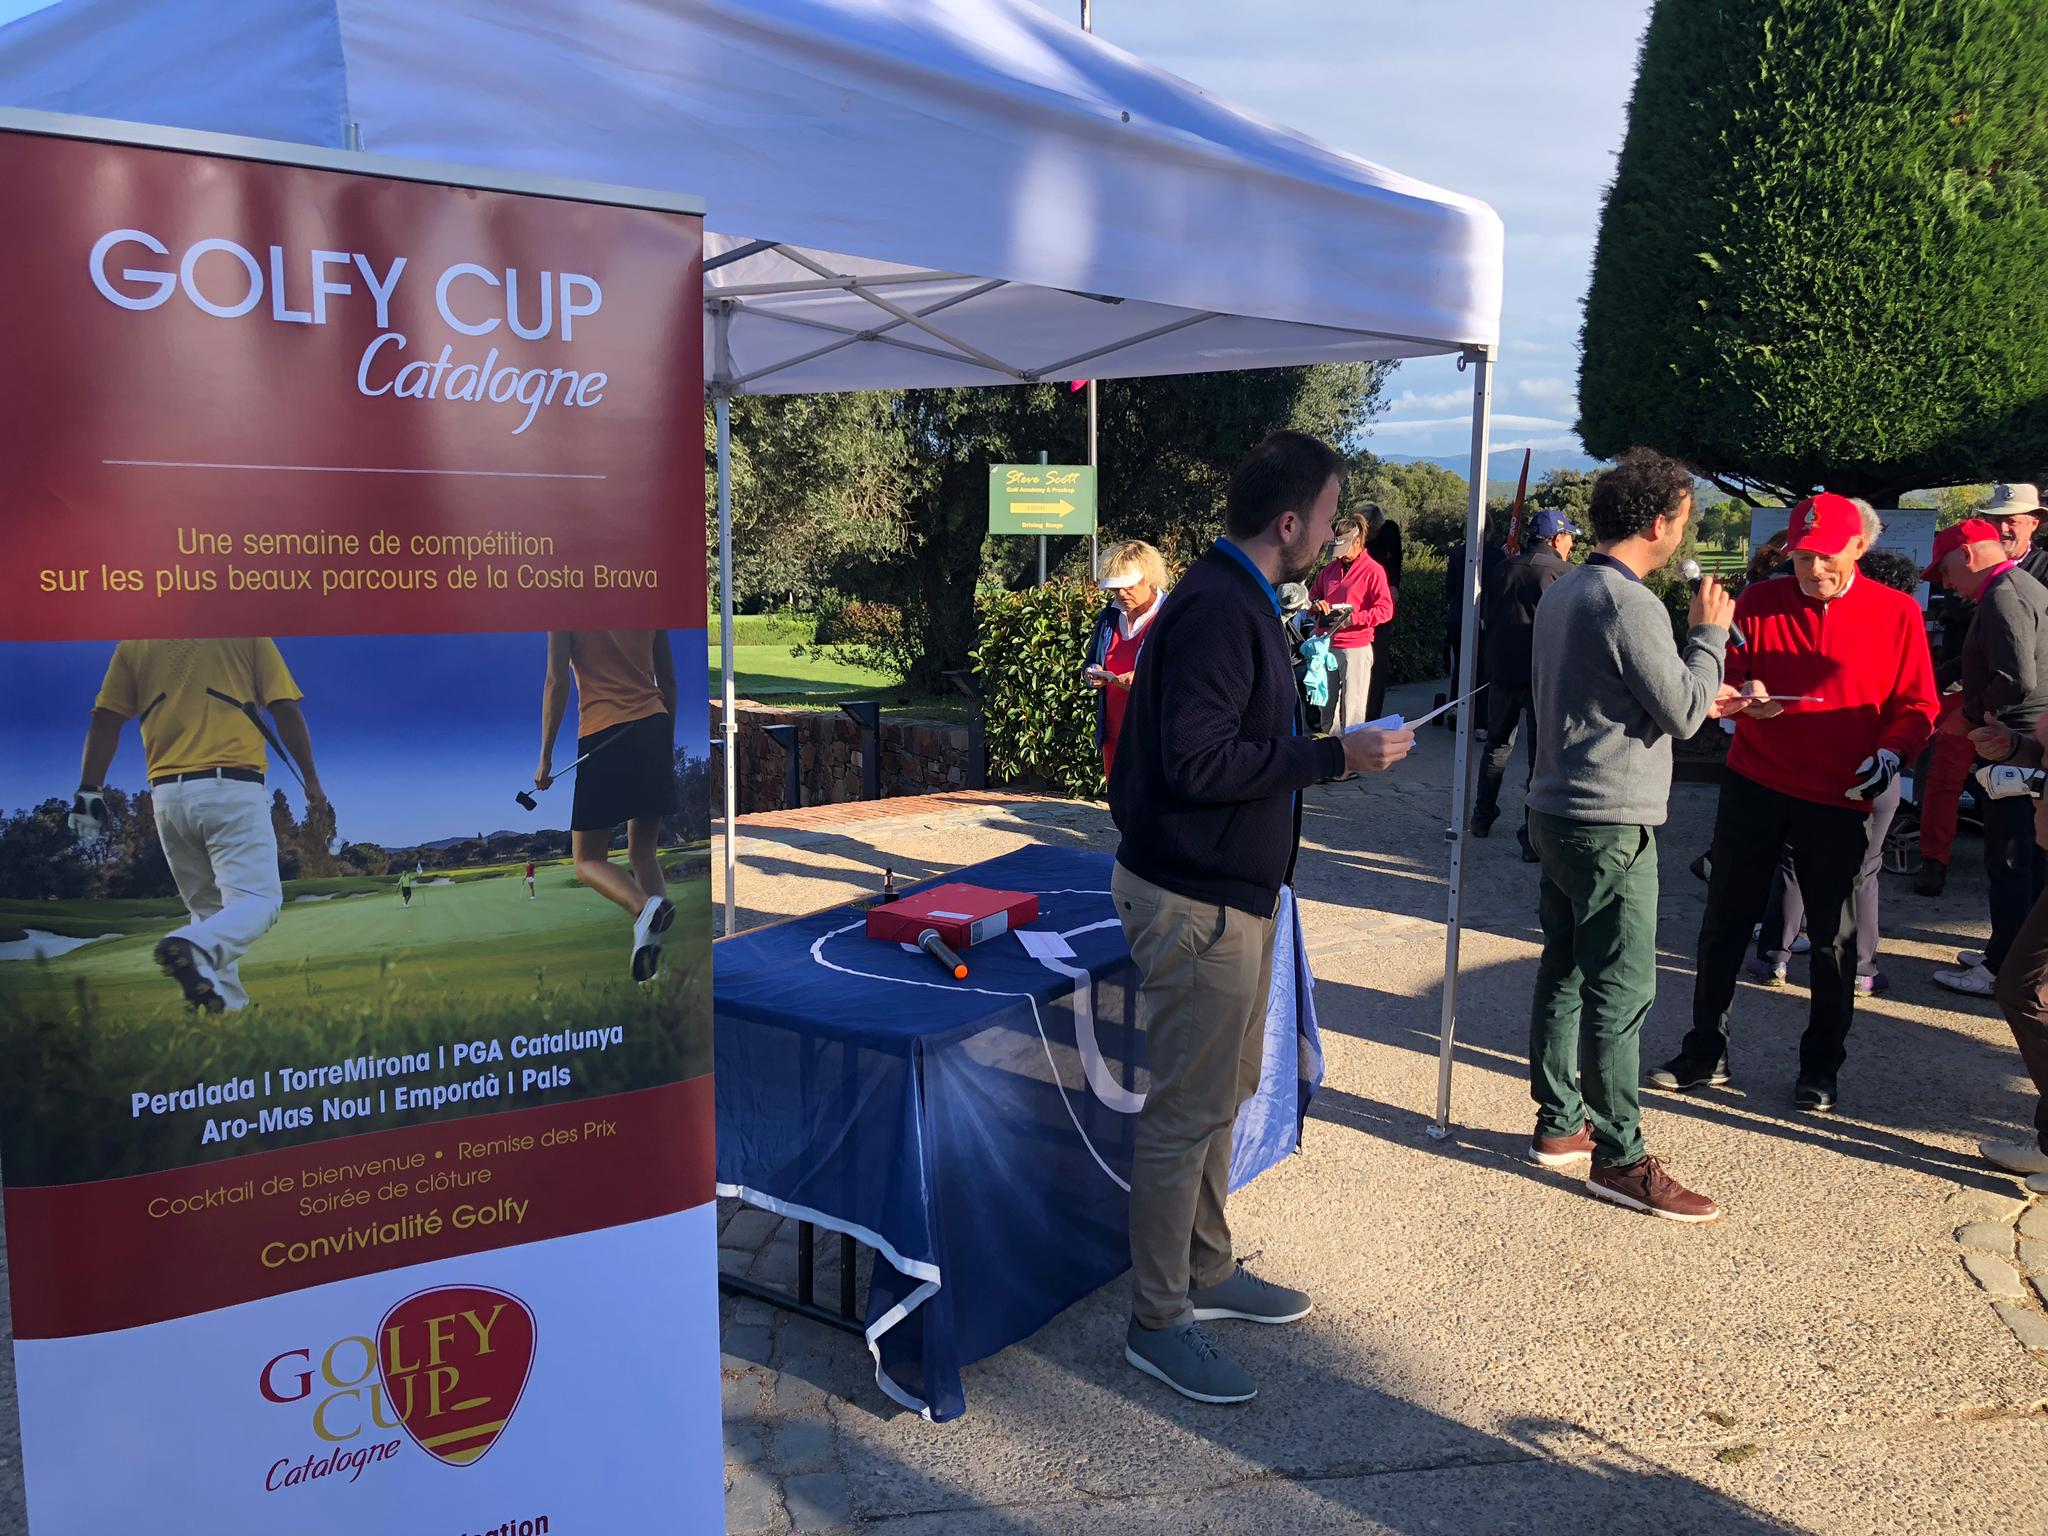 WhatsApp-Image-2019-11-07-at-17.57.35 Golfy Cup Catalogne 2019